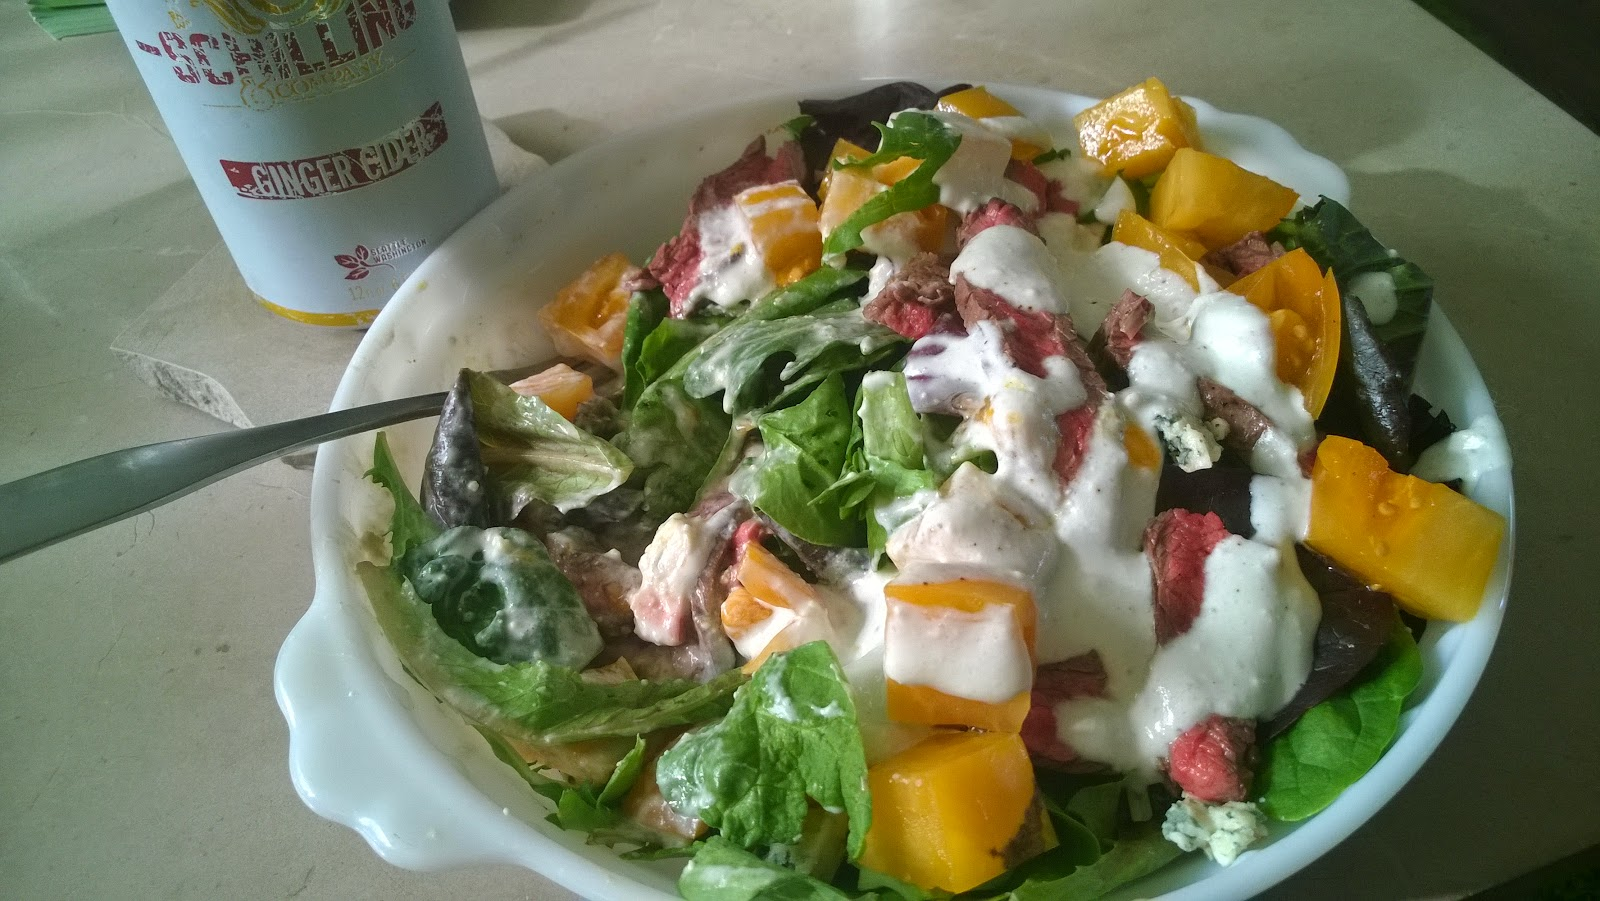 delicious bleu cheese and steak salad, under 425 calories